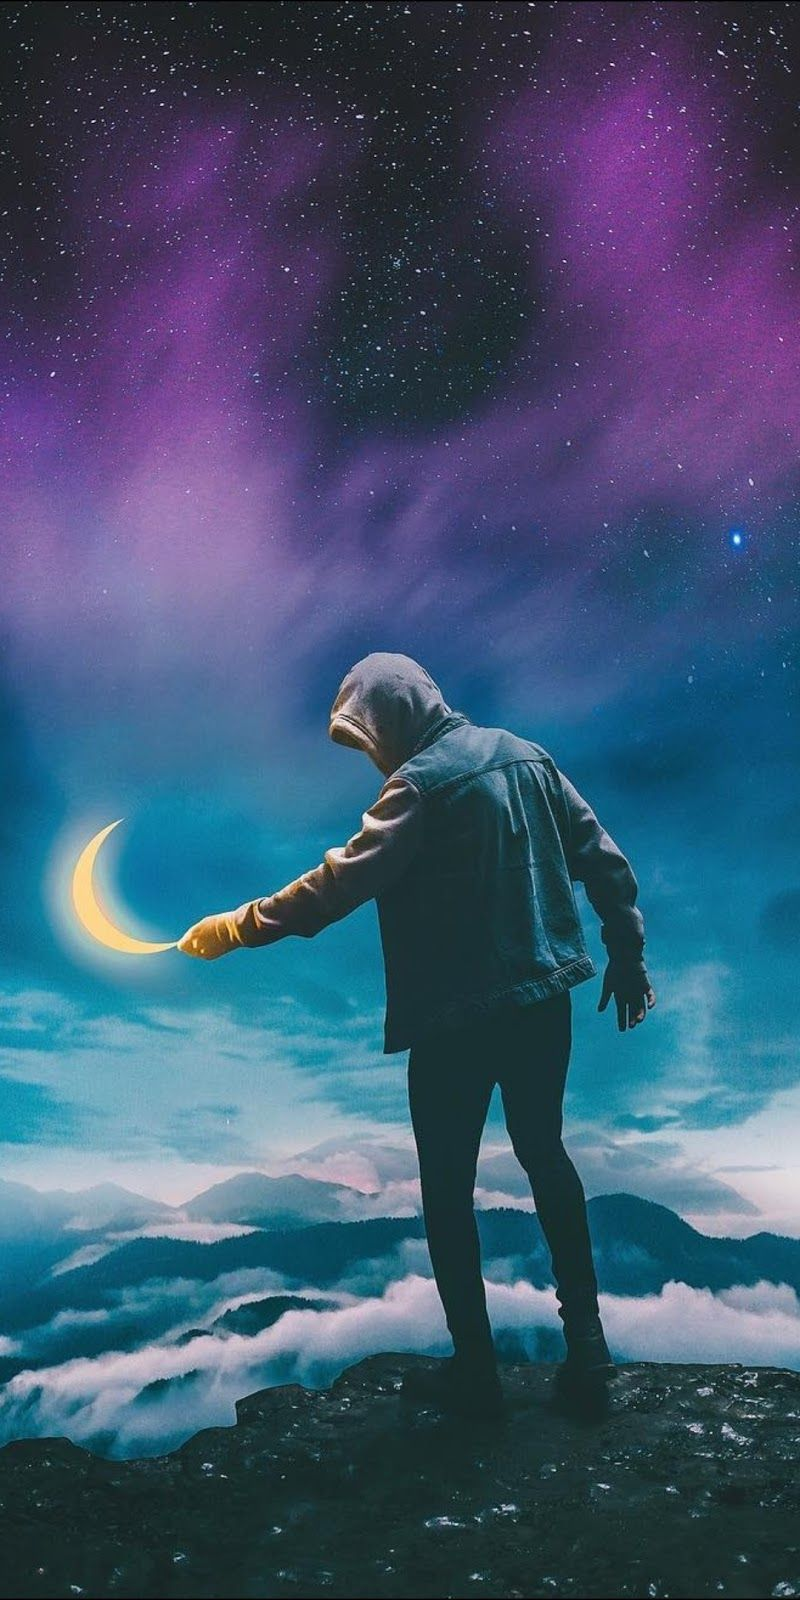 Stealing The Moon Wallpaper Pictures Live Wallpapers Art Wallpaper